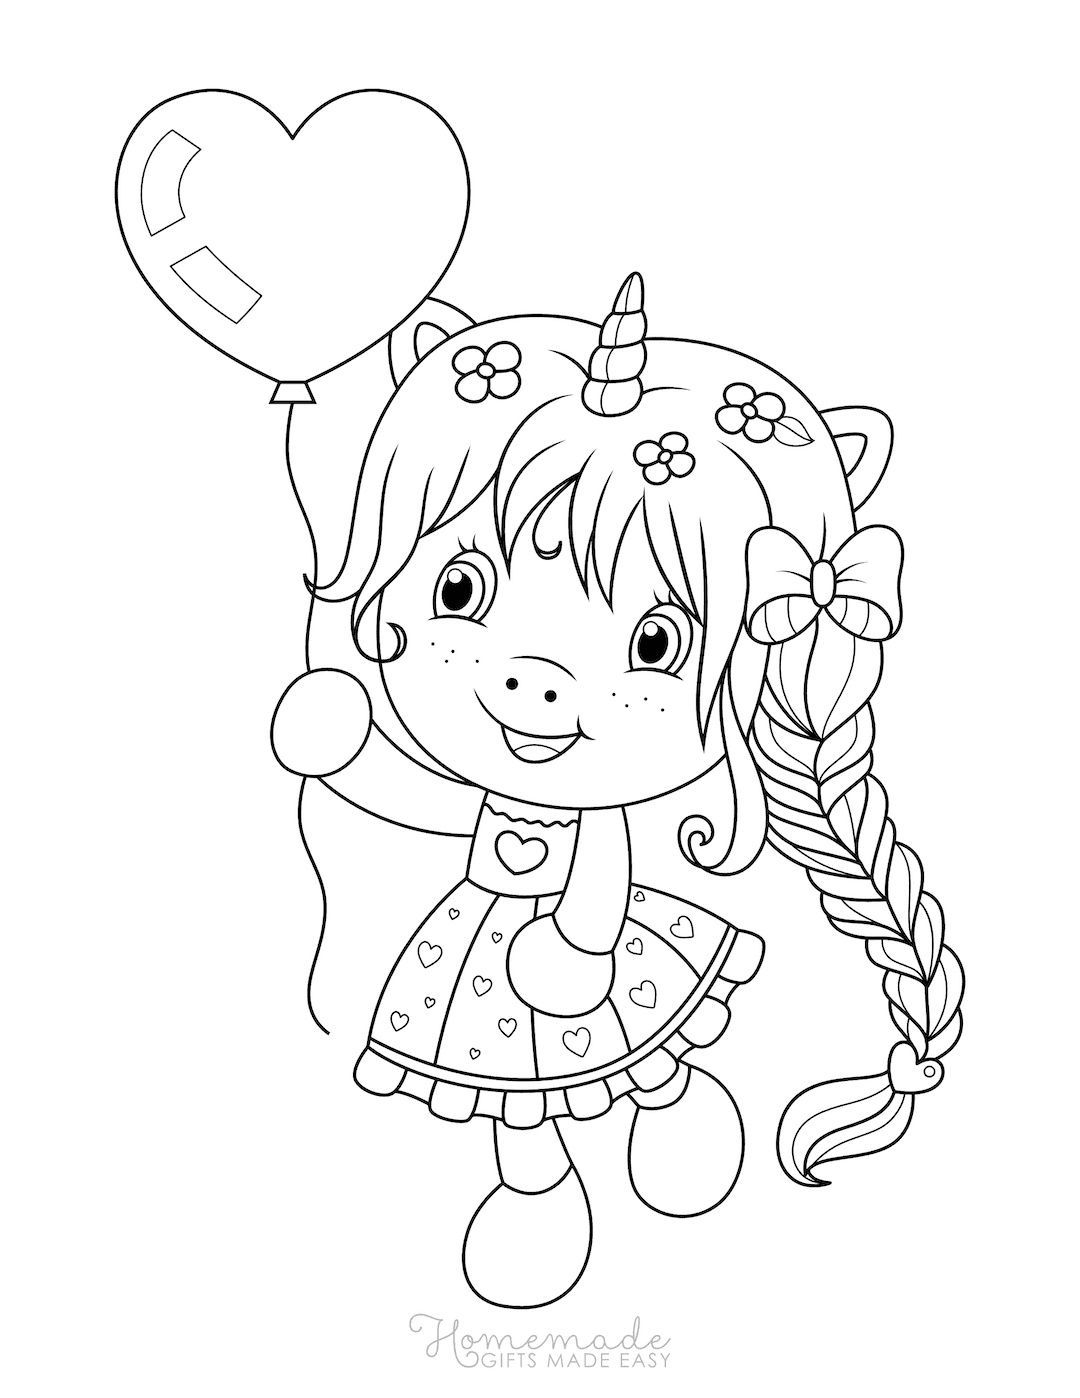 75 Magical Unicorn Coloring Pages For Kids Adults Free Printables Kleurplaten